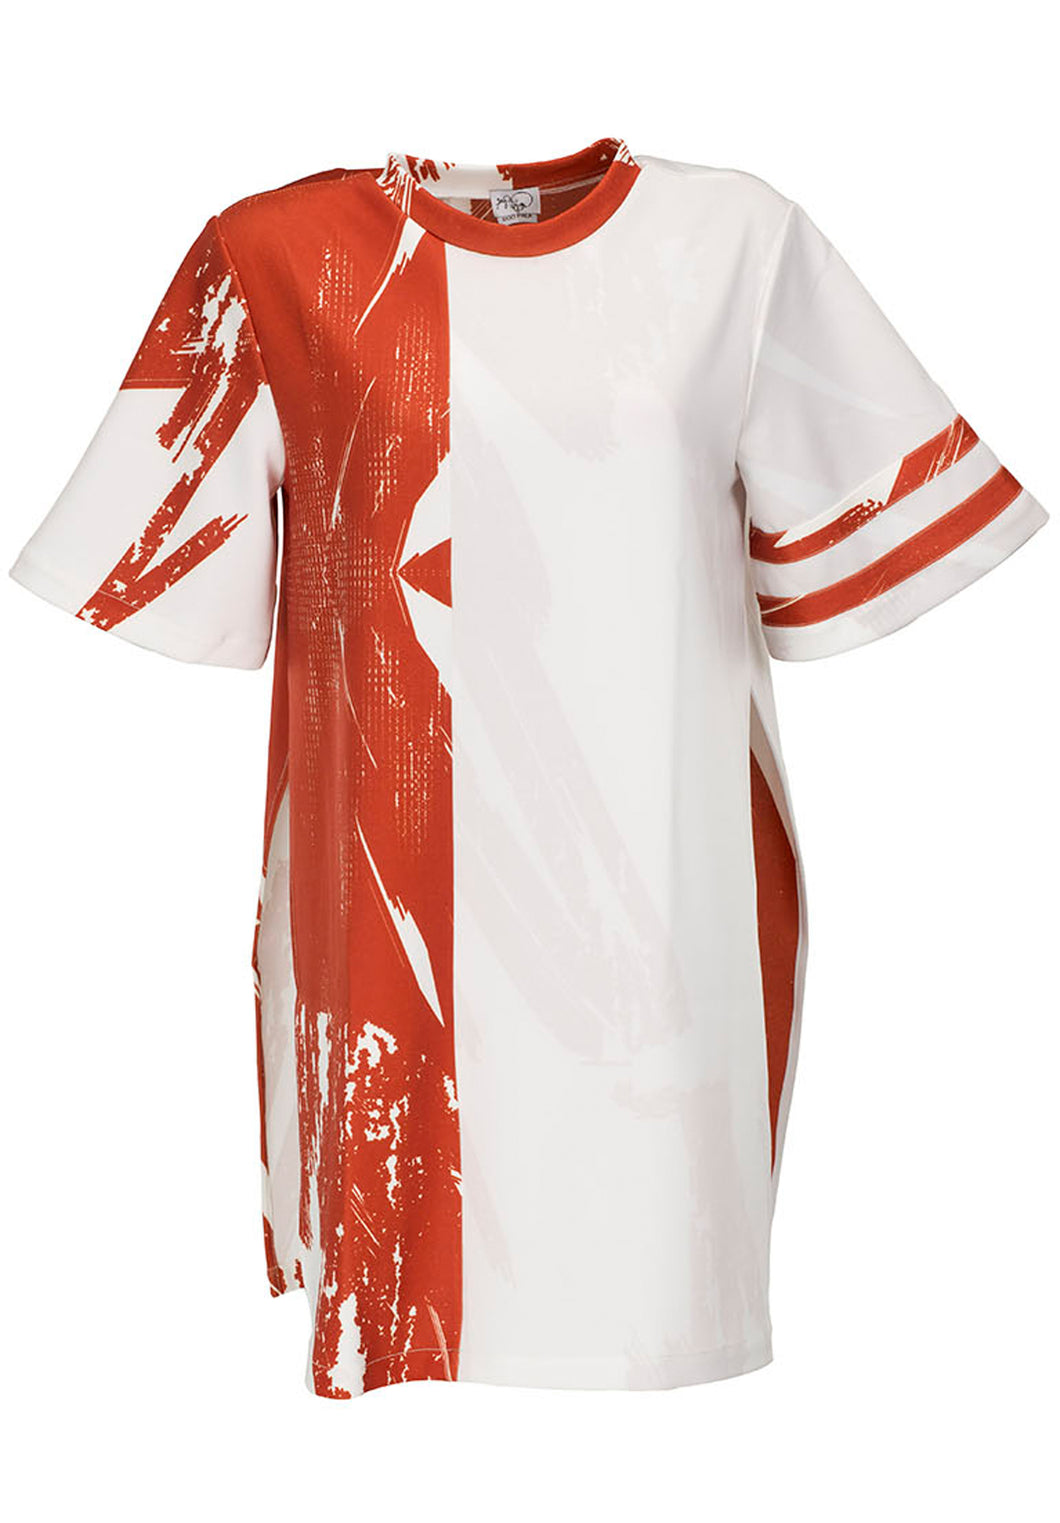 Unisex Red & White Hues  T-Shirt - BOO PALA LONDON